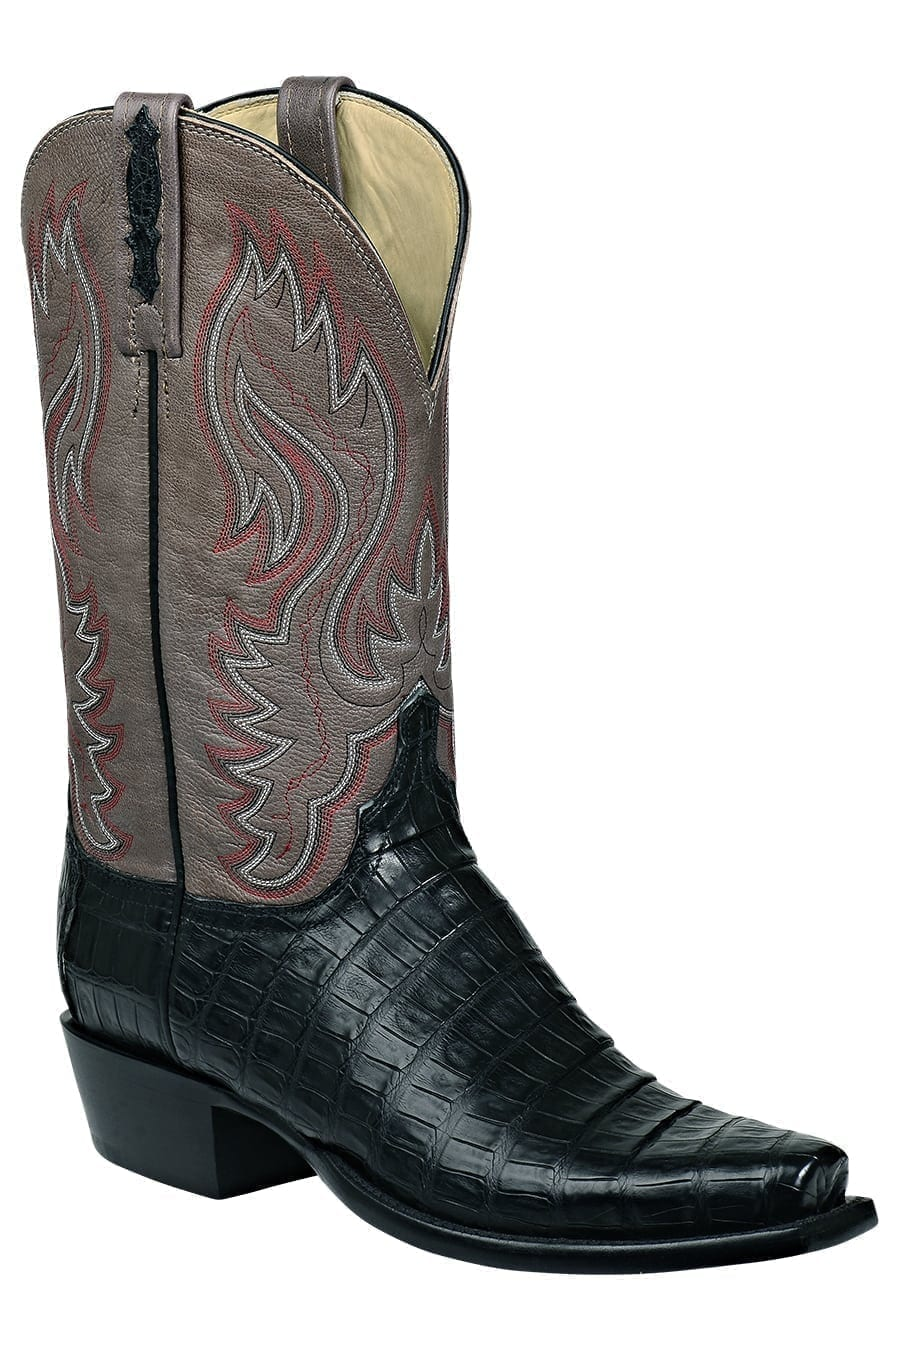 Lucchese Men S Heritage Black Bias Caiman Belly Boots N